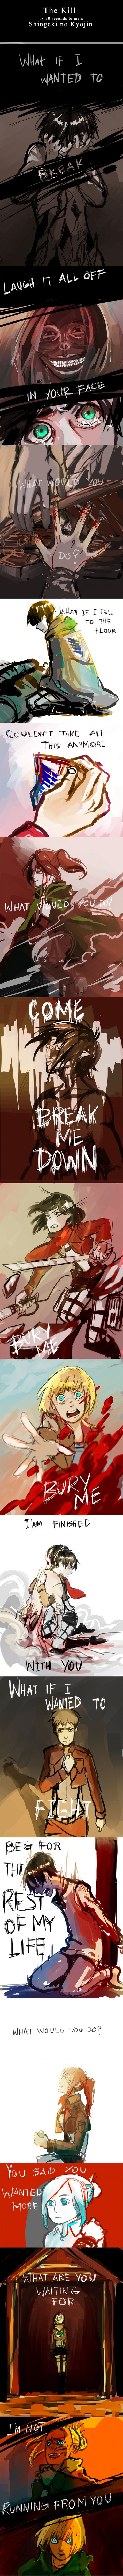 Attack on Titan. LOVE THIS!!!!!!